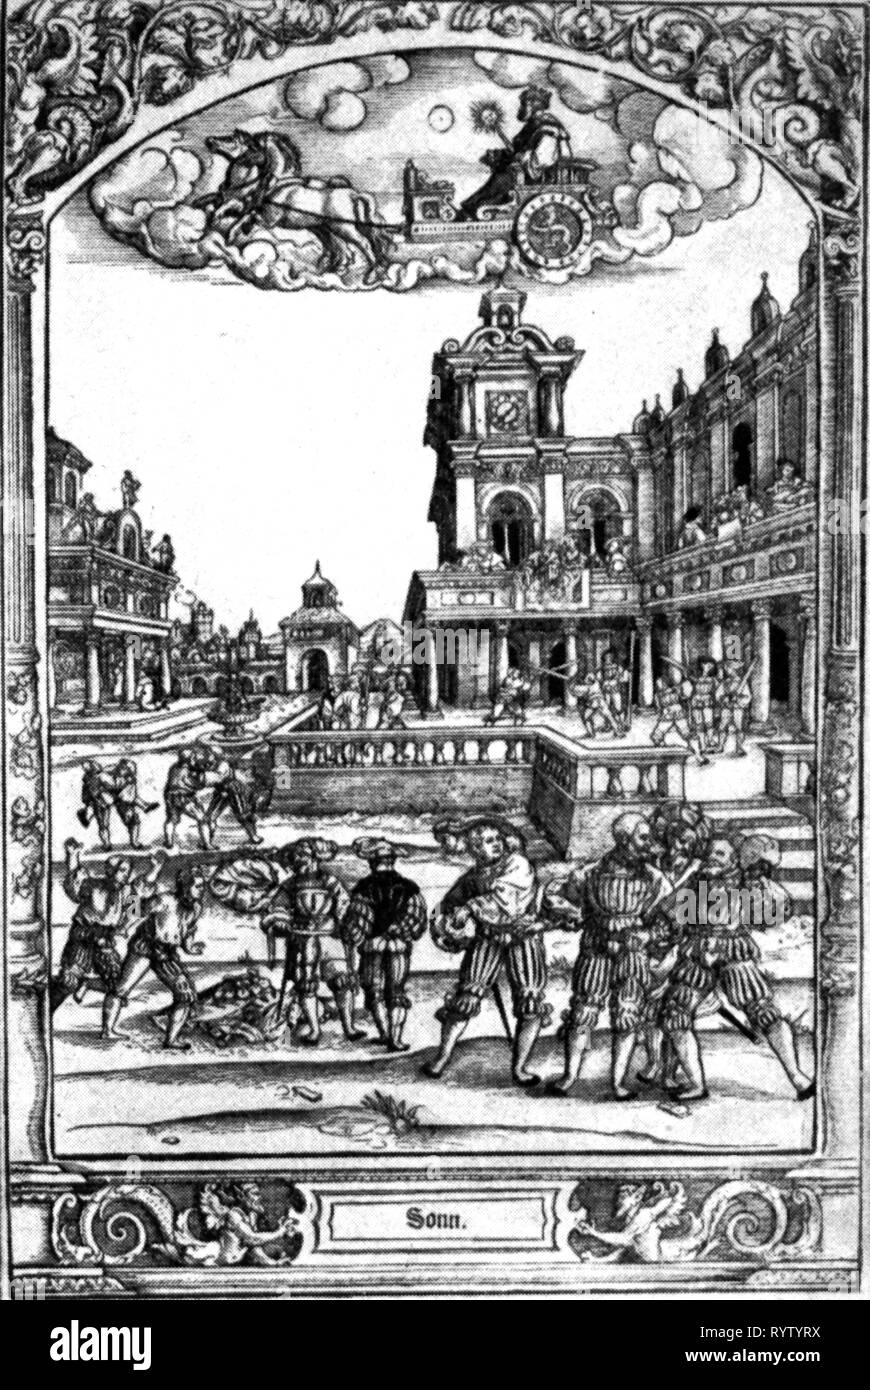 astronomy, allegories, sun, sun god in the chariot above courtyard with warrior during weapons training, copper engraving, by Hans Sebald Beham (1500 - 1550), 1530 - 1540, Artist's Copyright has not to be cleared - Stock Image